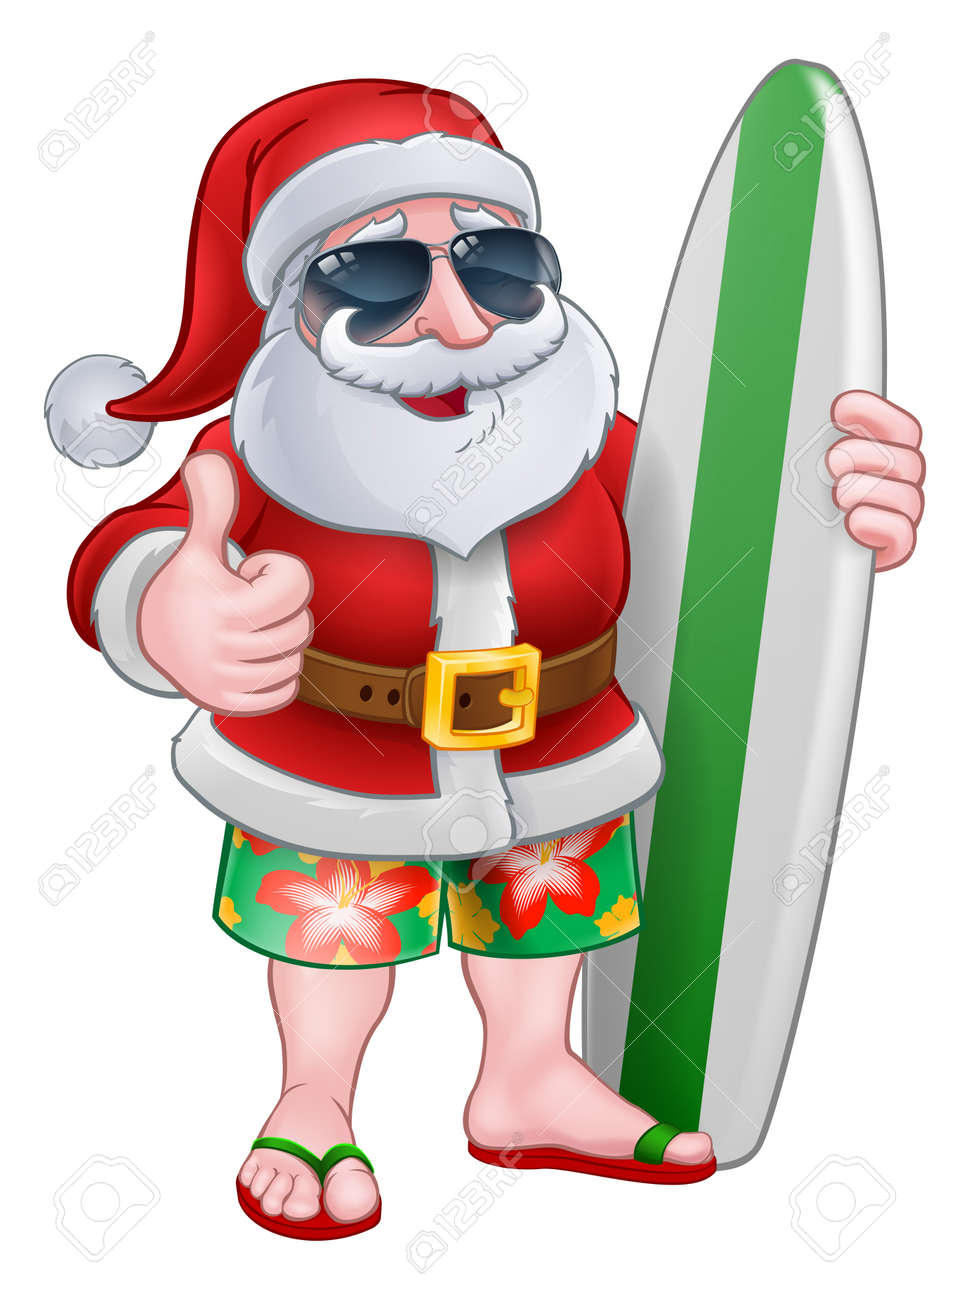 Cool Santa Claus in shorts and flip flops wearing shades or sunglasses and holding his surfboard, Christmas cartoon. - 121753271